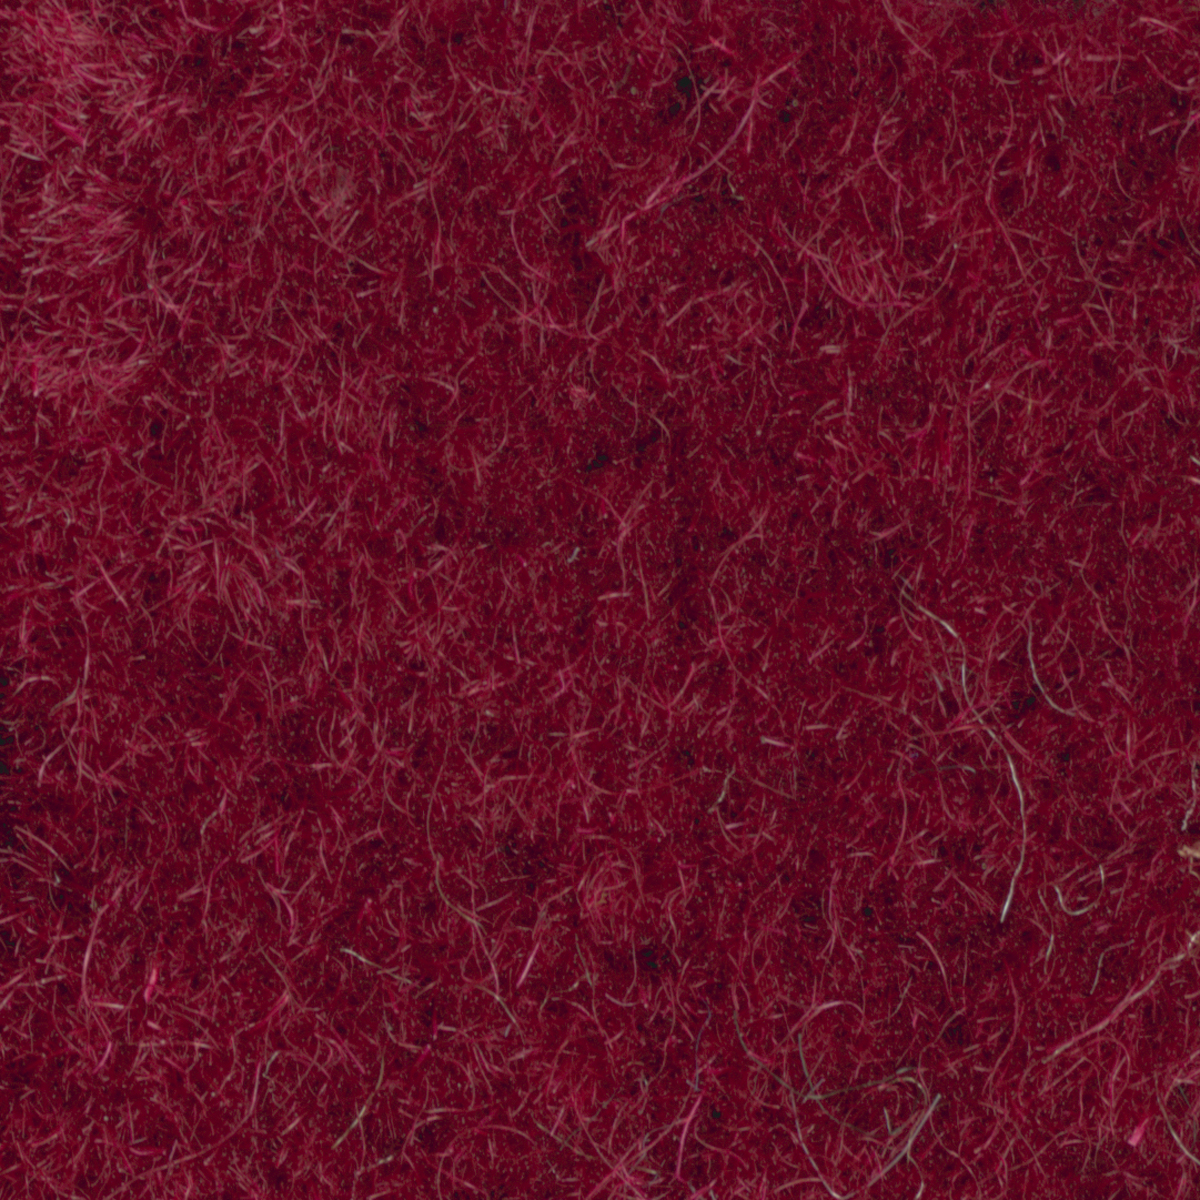 RED ENGLISH WILTON II WOOL CARPET